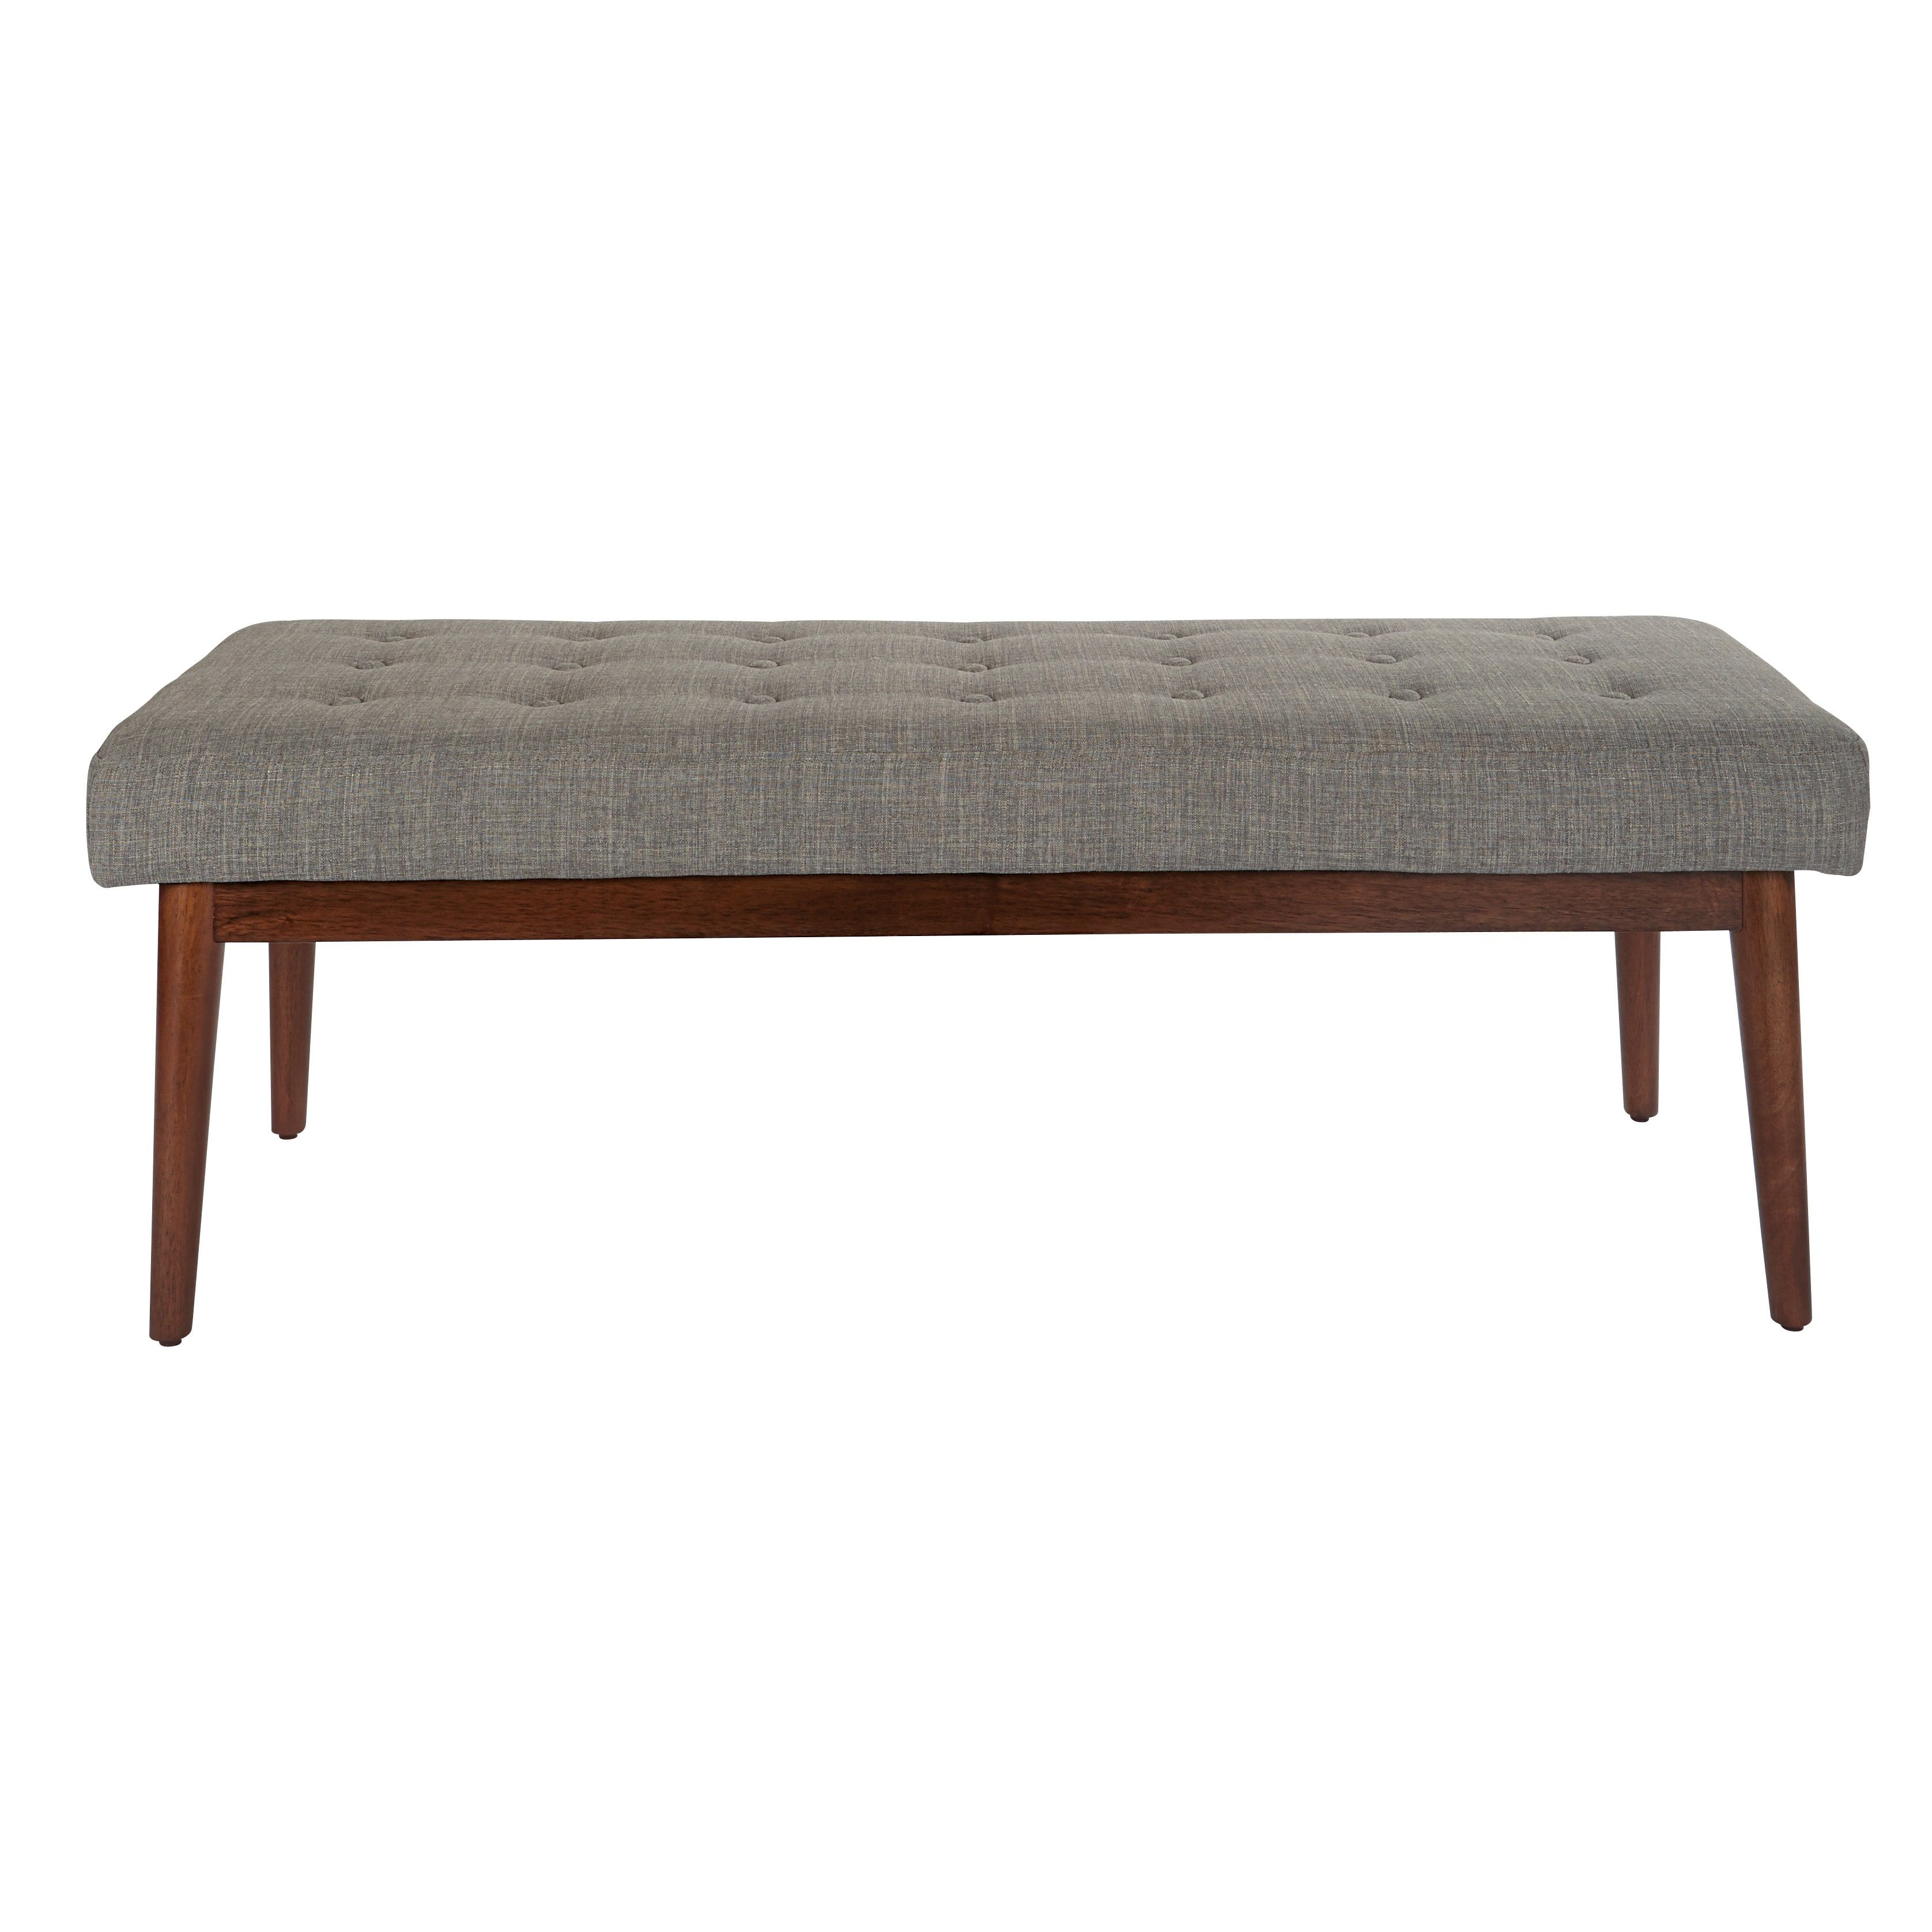 Stupendous Office Star Products Ave Six Fabric West Park Bench With Andrewgaddart Wooden Chair Designs For Living Room Andrewgaddartcom